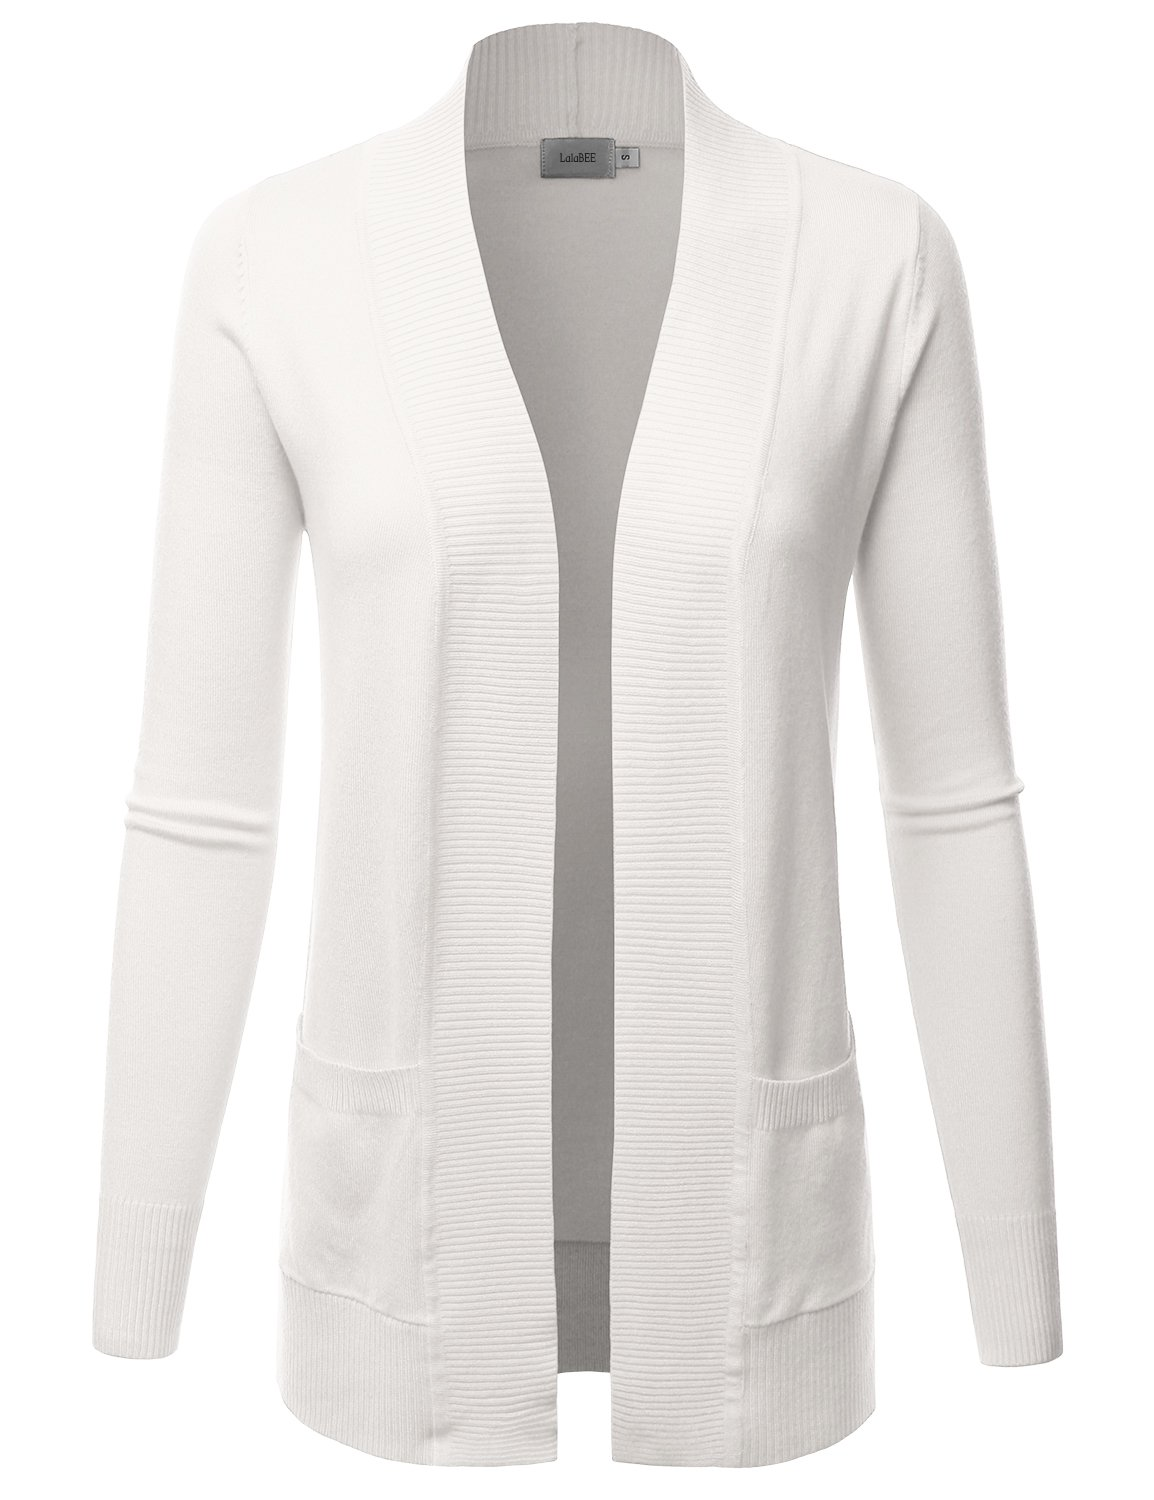 LALABEE Women's Open Front Pockets Knit Long Sleeve Sweater Cardigan-Ivory-L